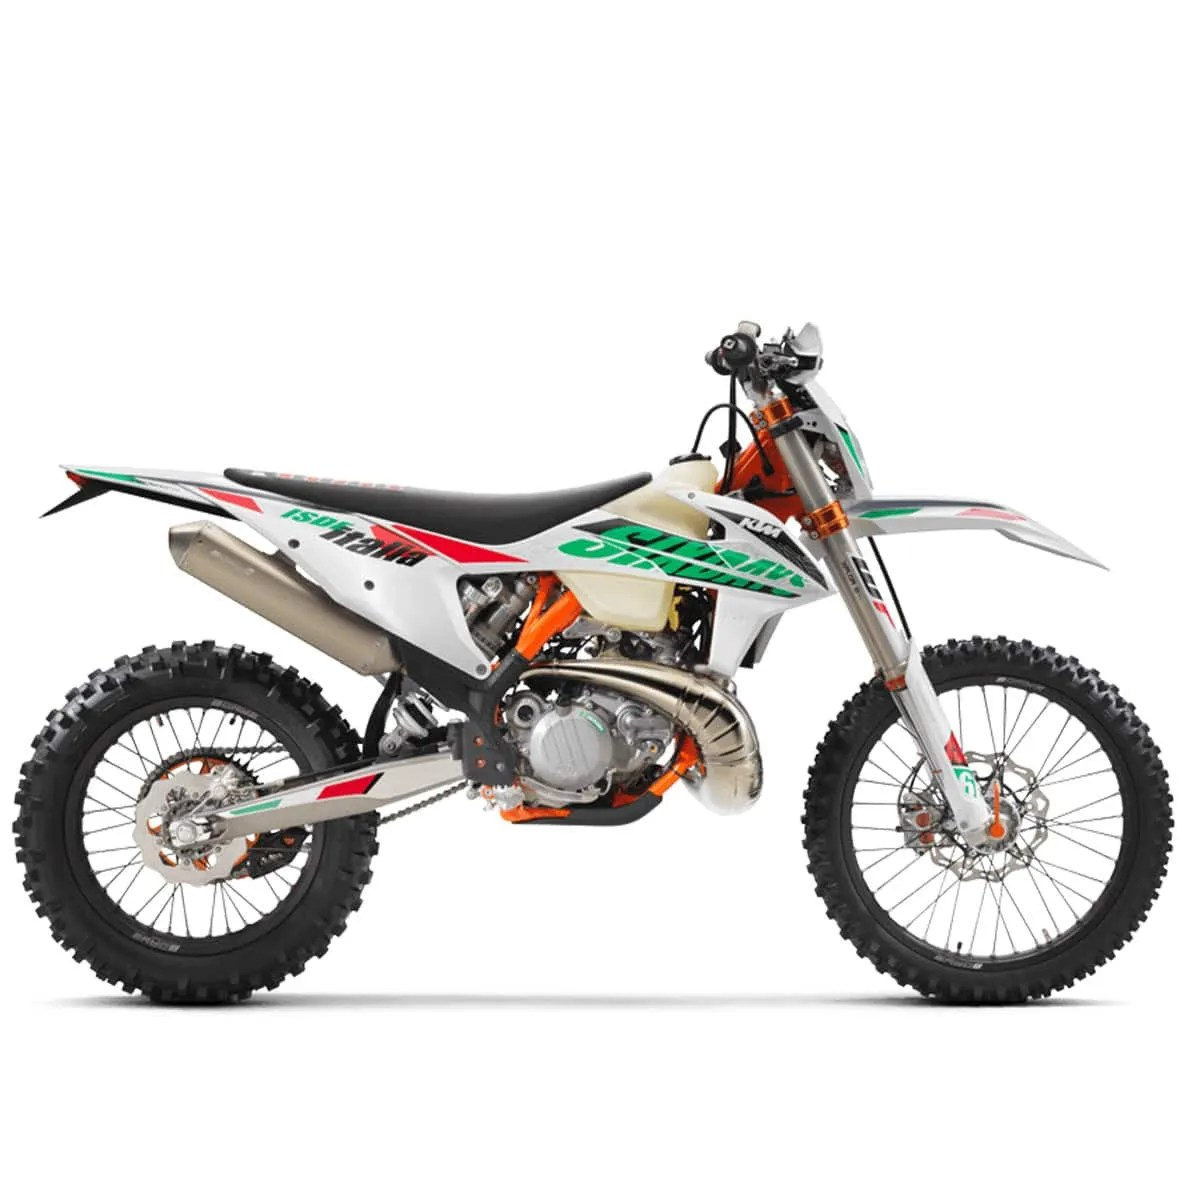 KTM-250-EXC-SIX-DAYS-TPI